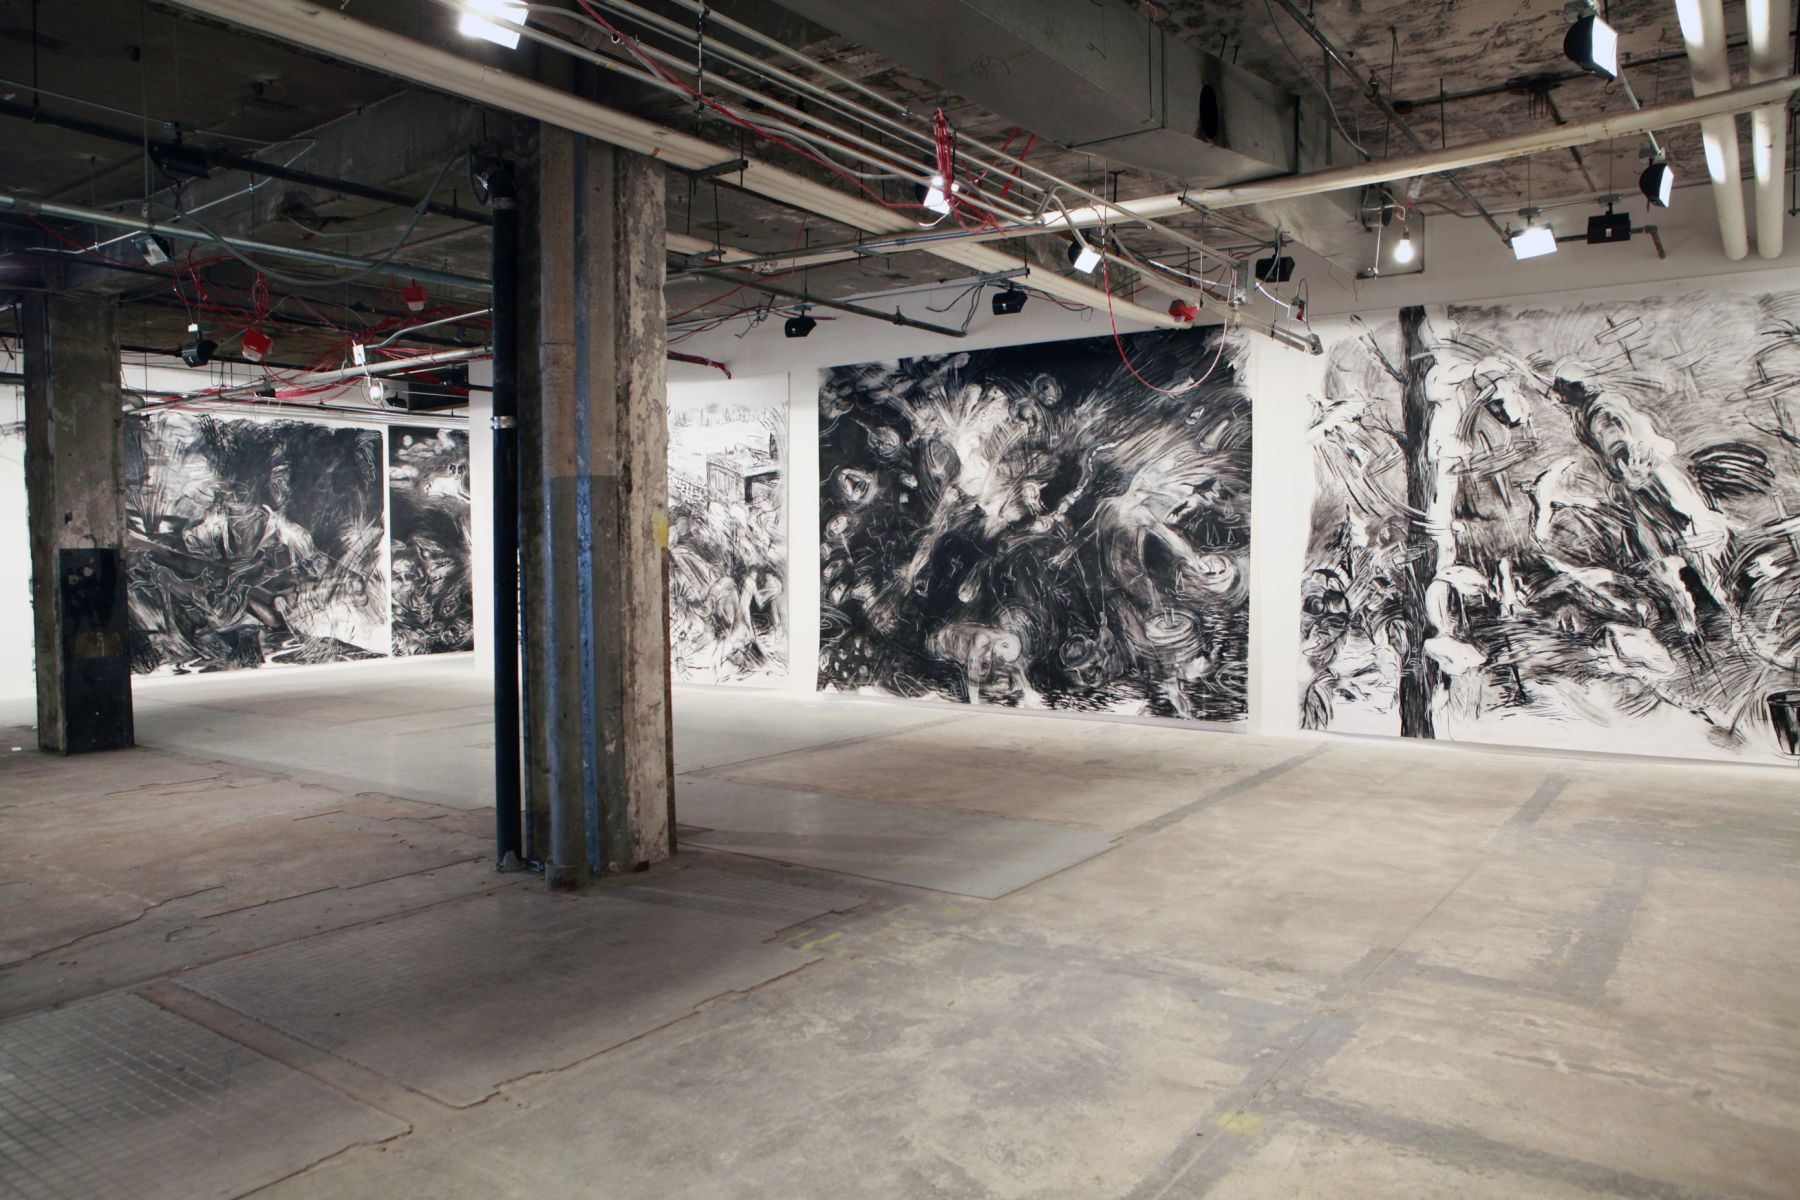 Installation view, Laurie Anderson, Boat​, Vito Schnabel, New York, 2012